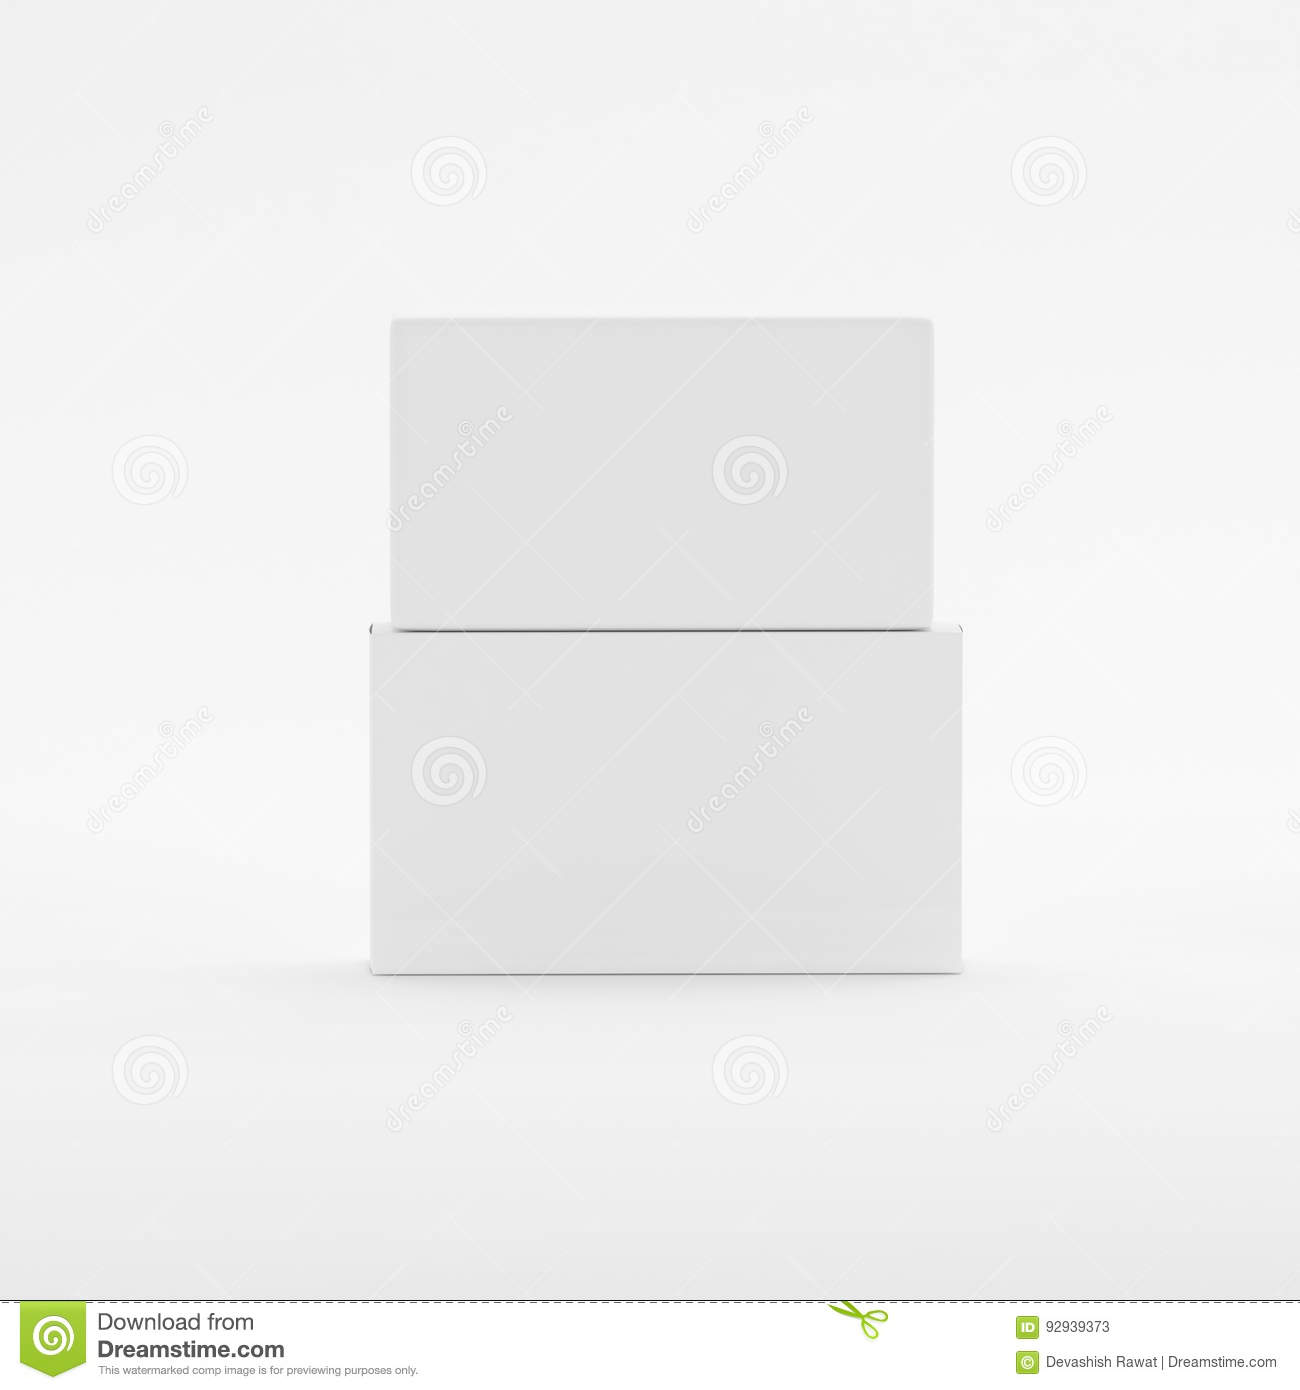 Blank Soap & Box Packaging Mock-Up Template On Isolated White Background